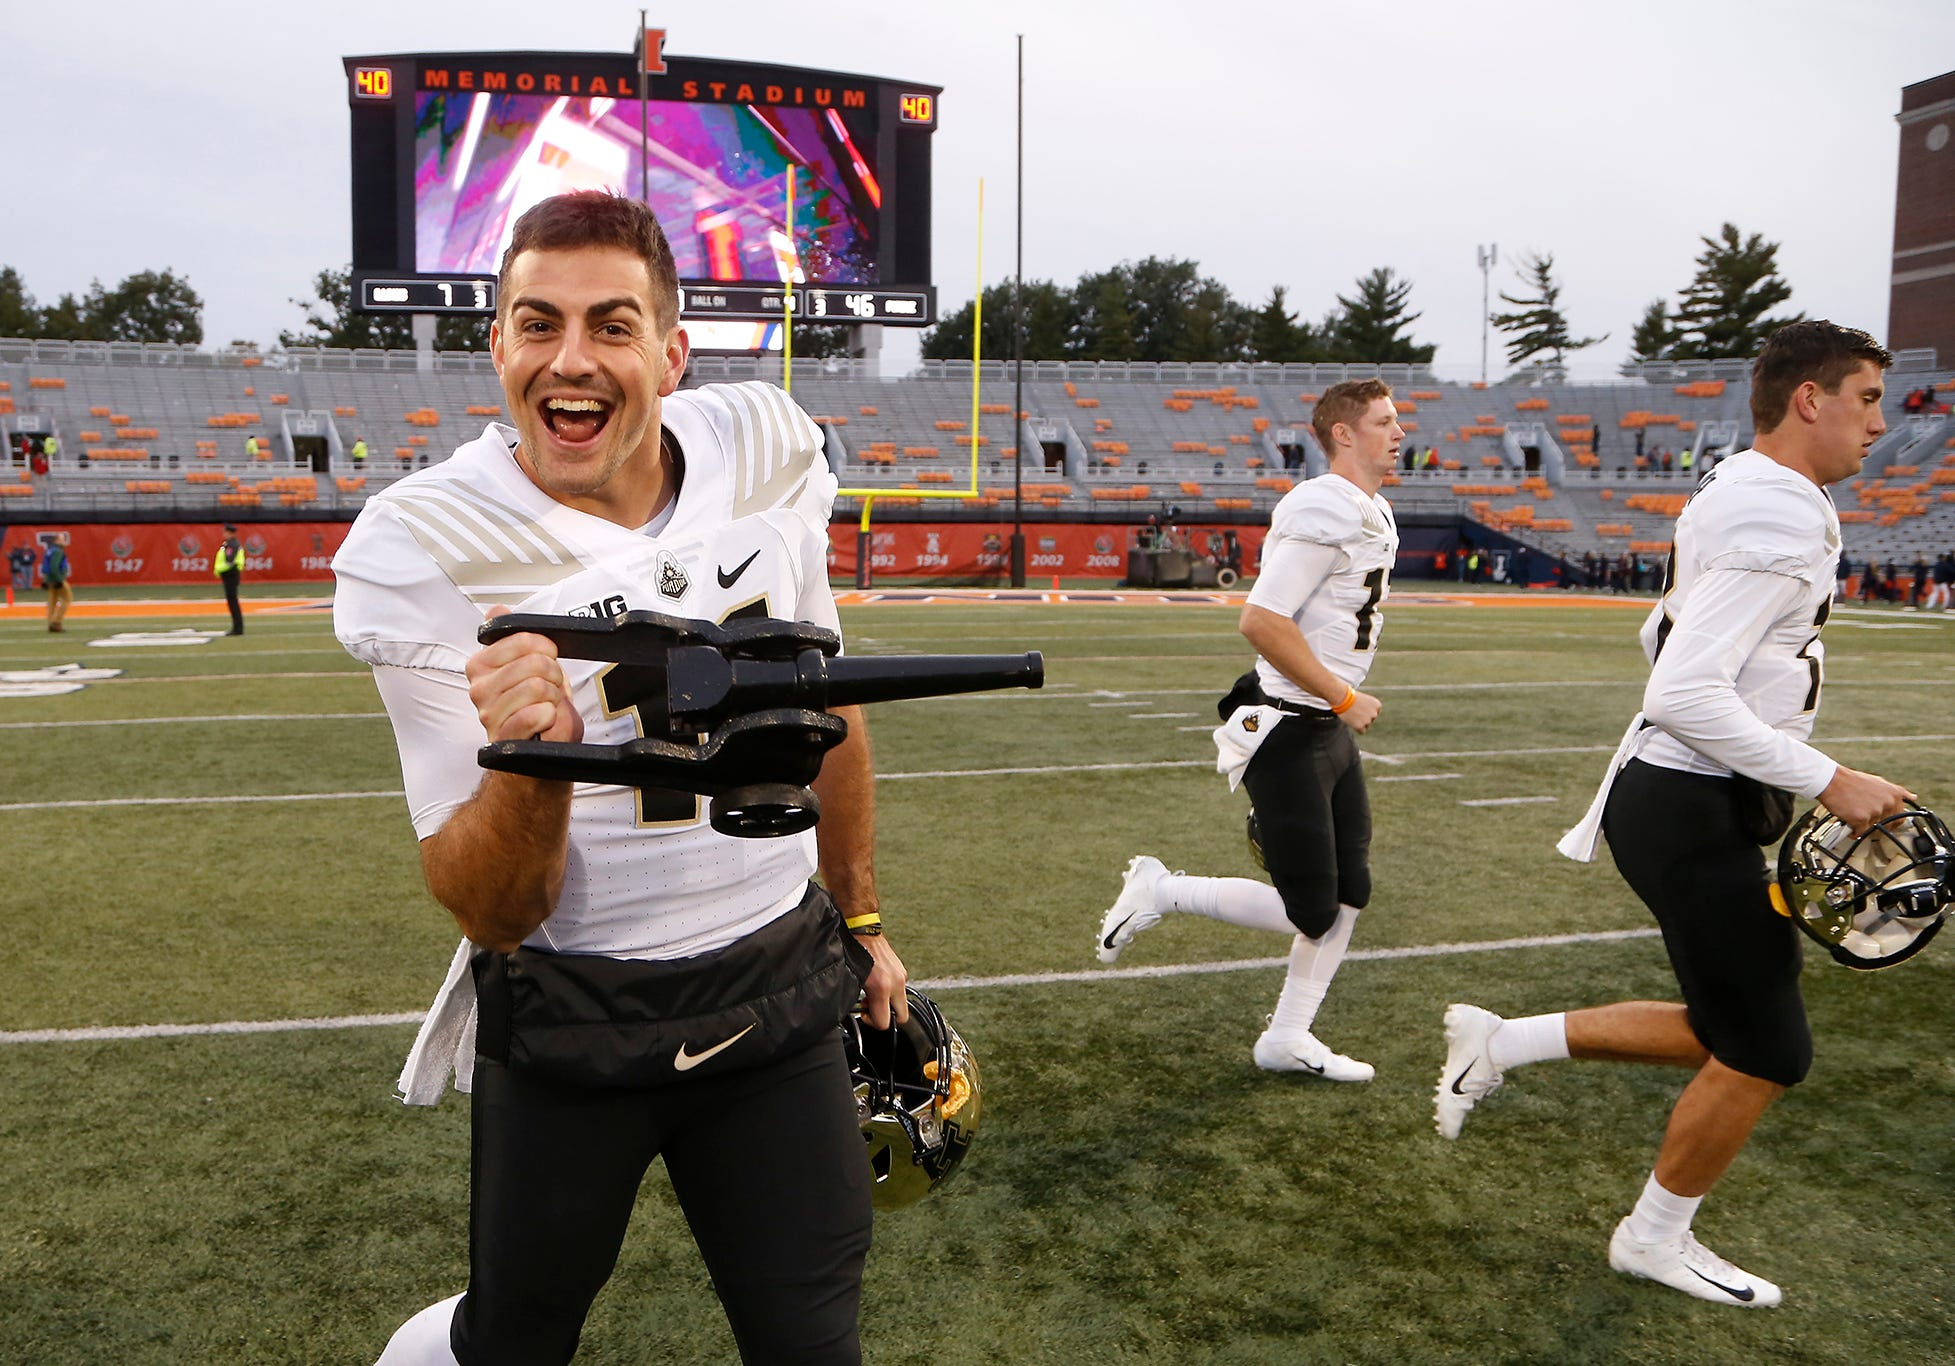 Purdue quarterback David Blough leaves the field with The Cannon traveling trophy after the Boilermakers pounded Illinois 46-7 Saturday, October 13, 2018, in Champaign, Illinois.